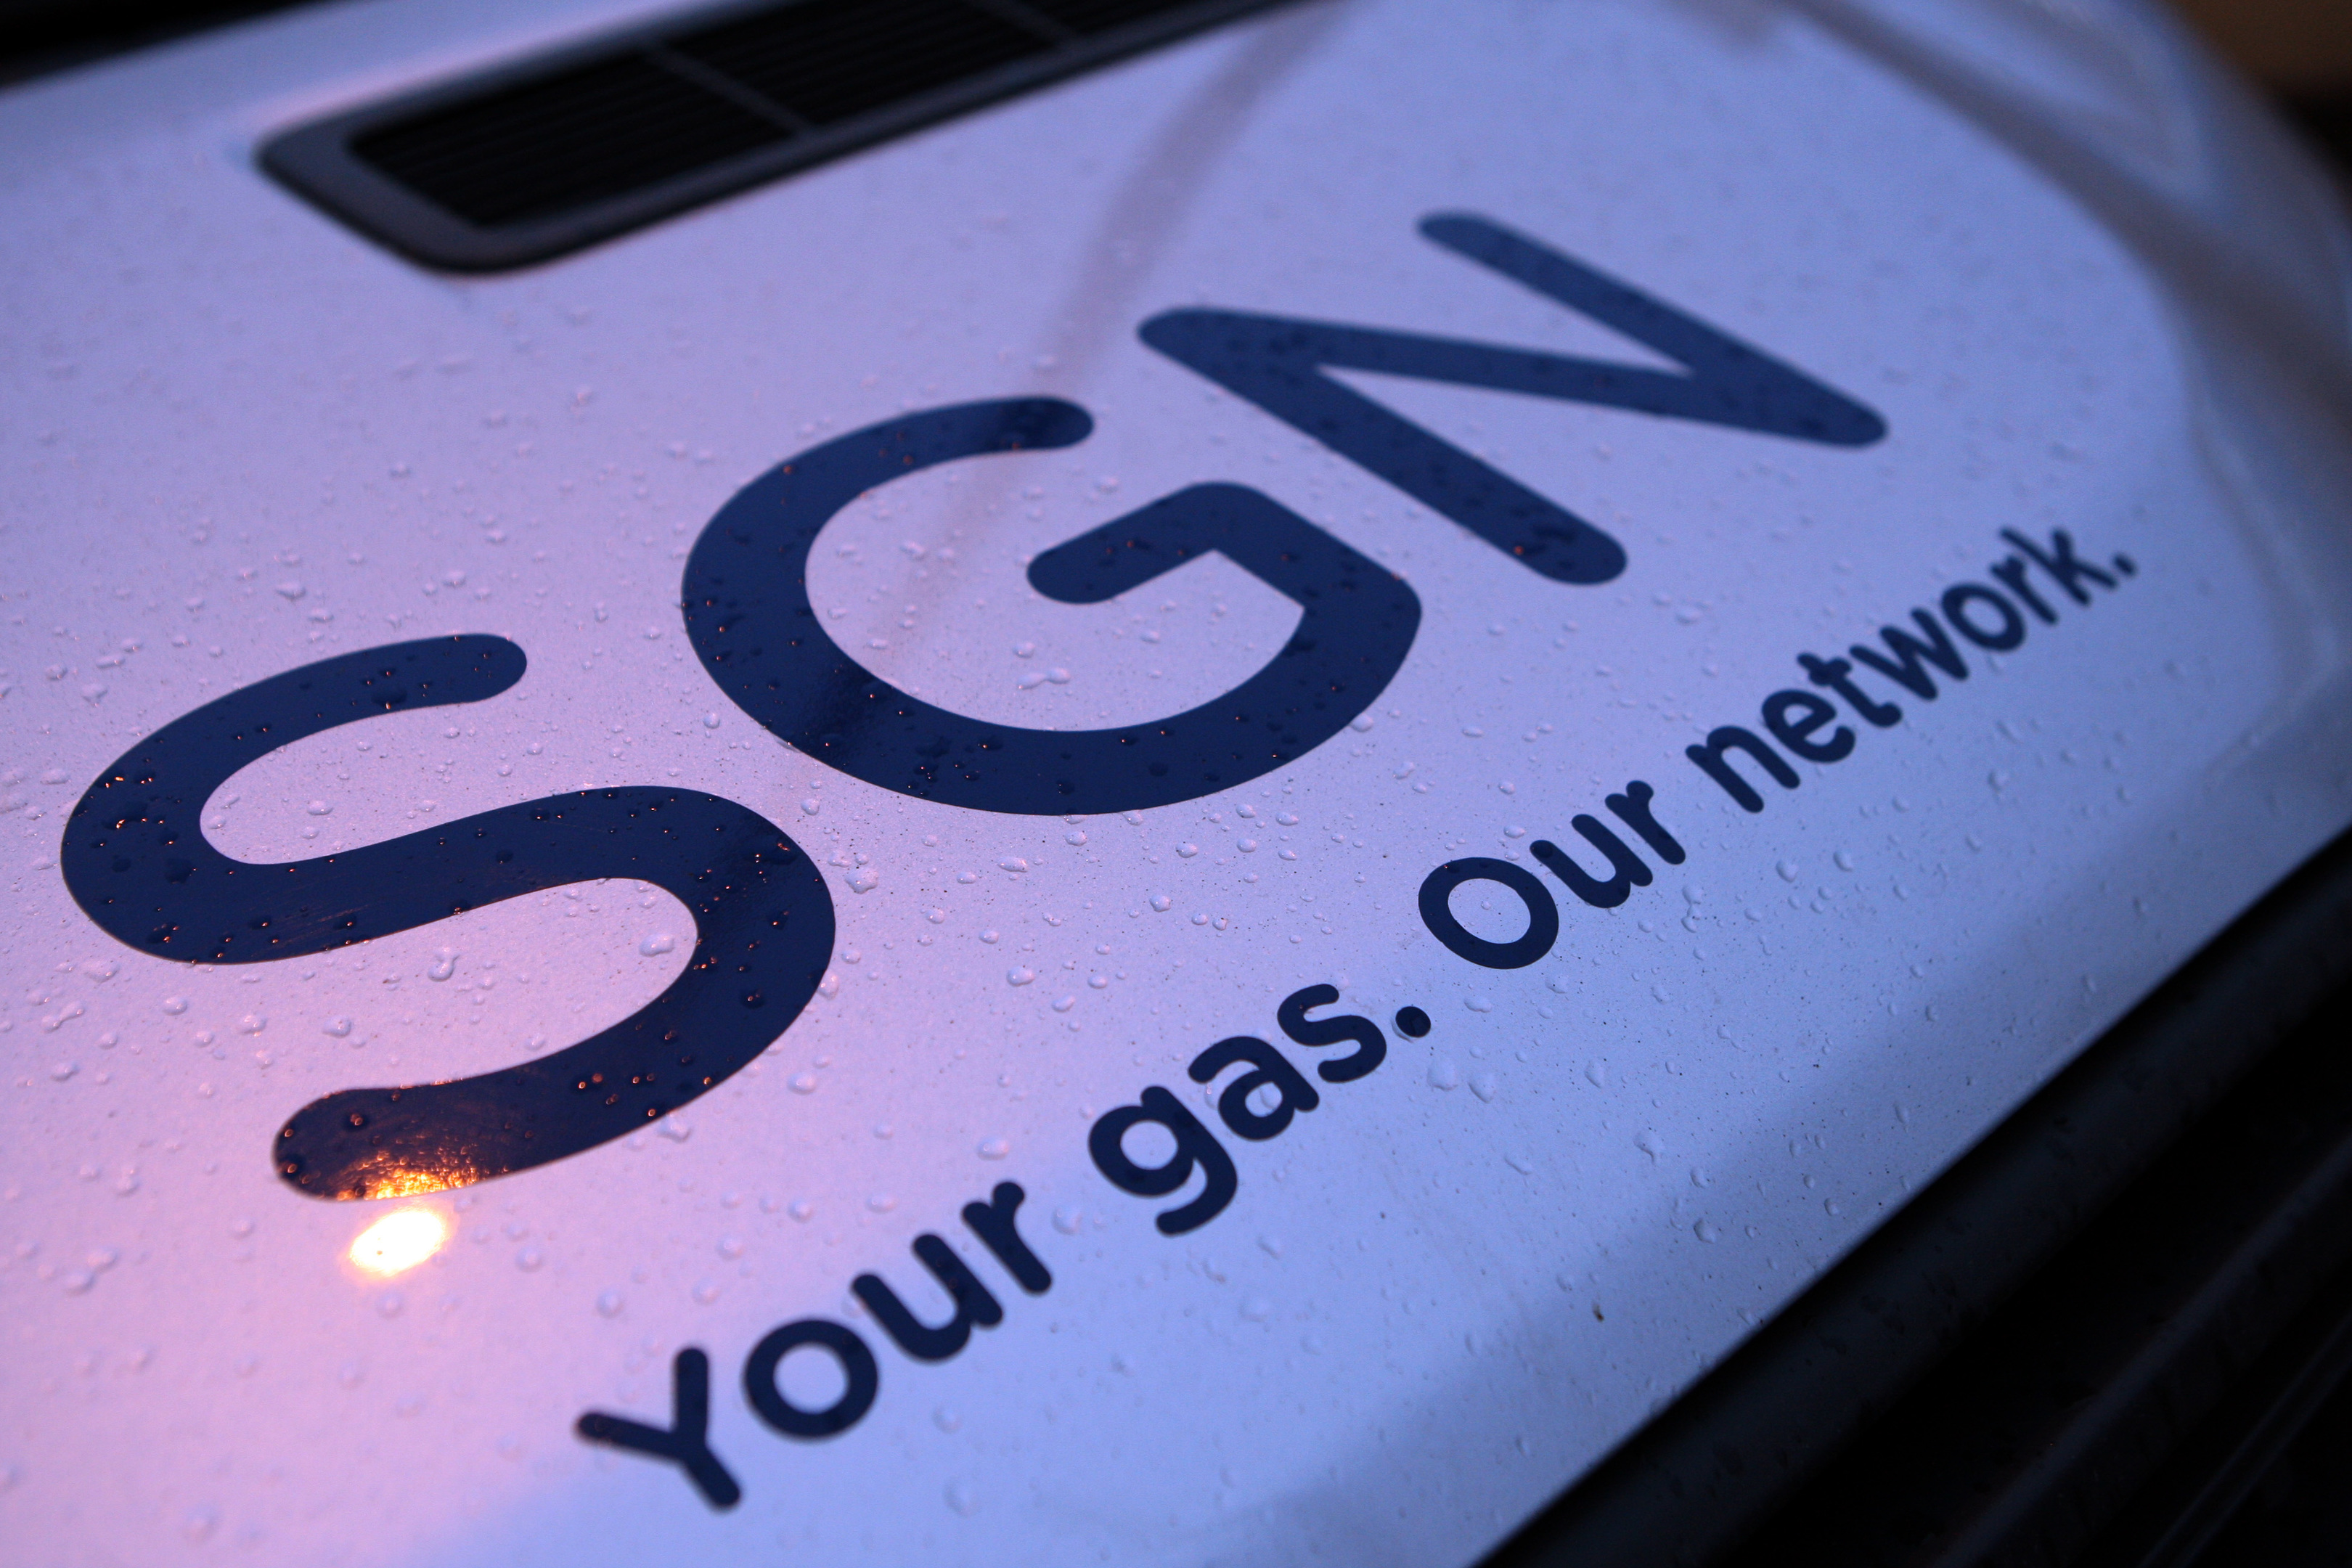 SSE plc - Agreement to dispose of 16.7% stake in SGN